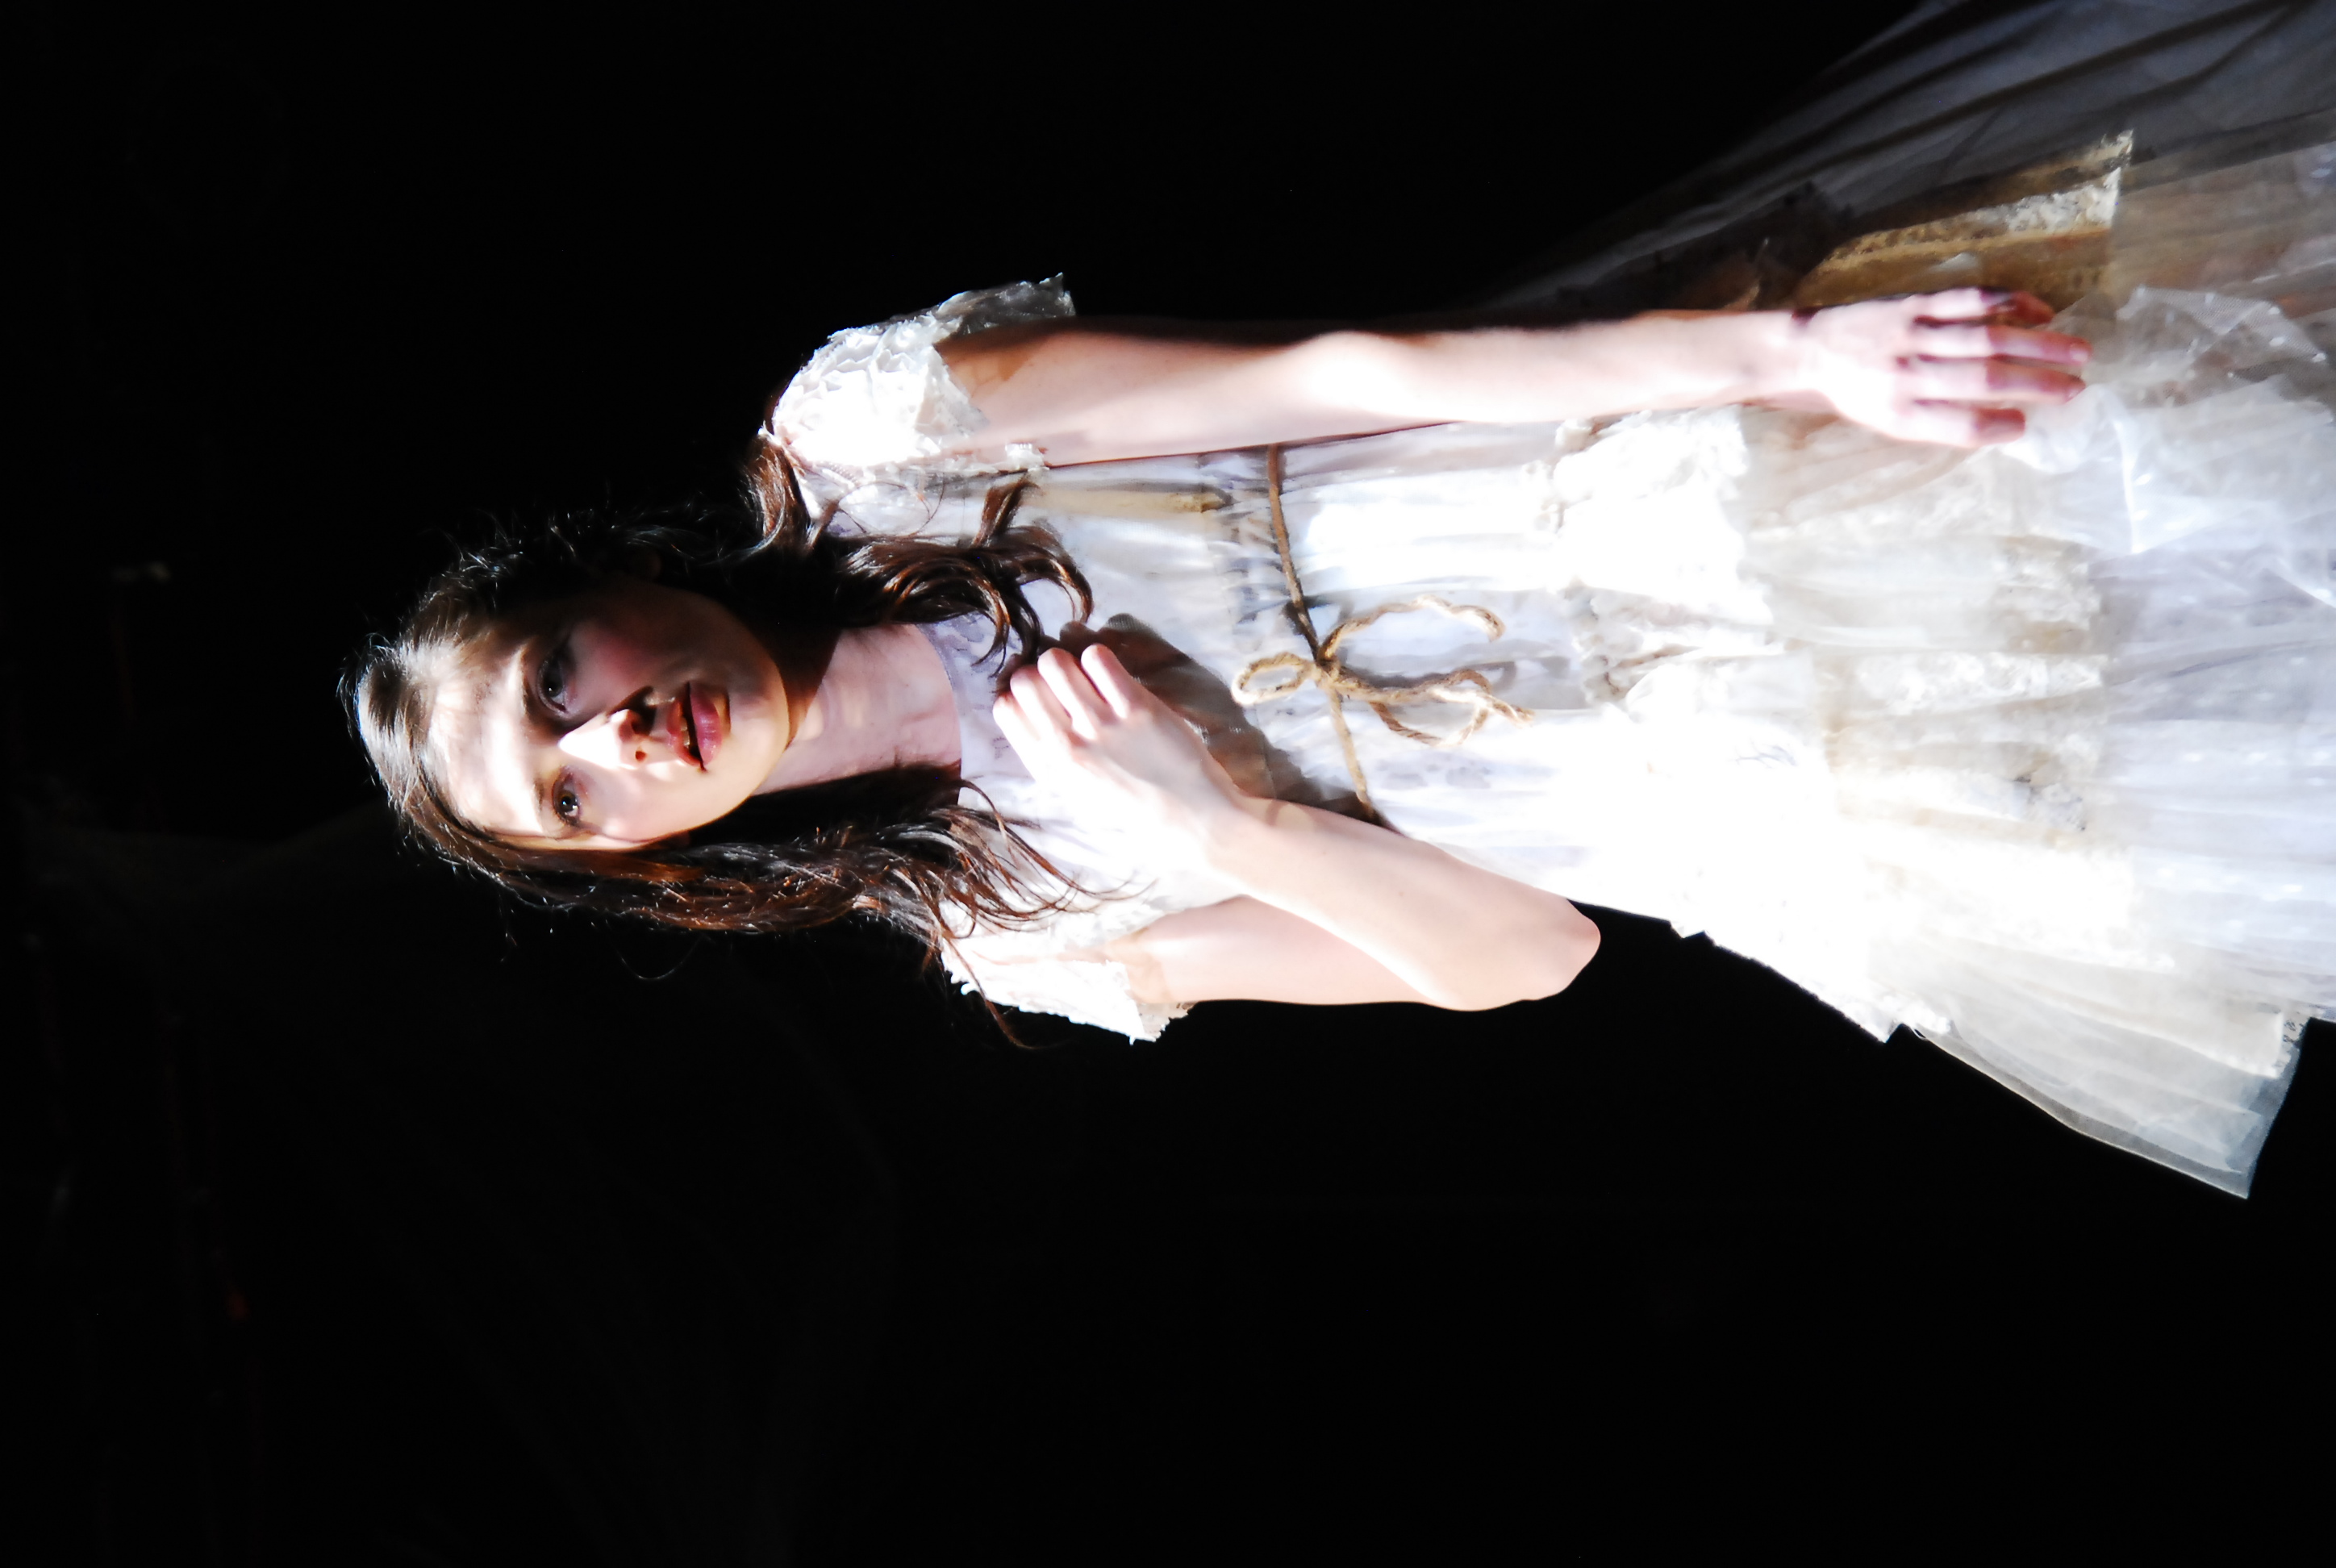 Robyn Buck as Arianna in The Pliant Girls , Fugitive Kind's Ovation Award-winning production loosely based on Aeschylus's The Suppliants .  Photo courtesy of Amanda McRaven   Download print quality(300 dpi)